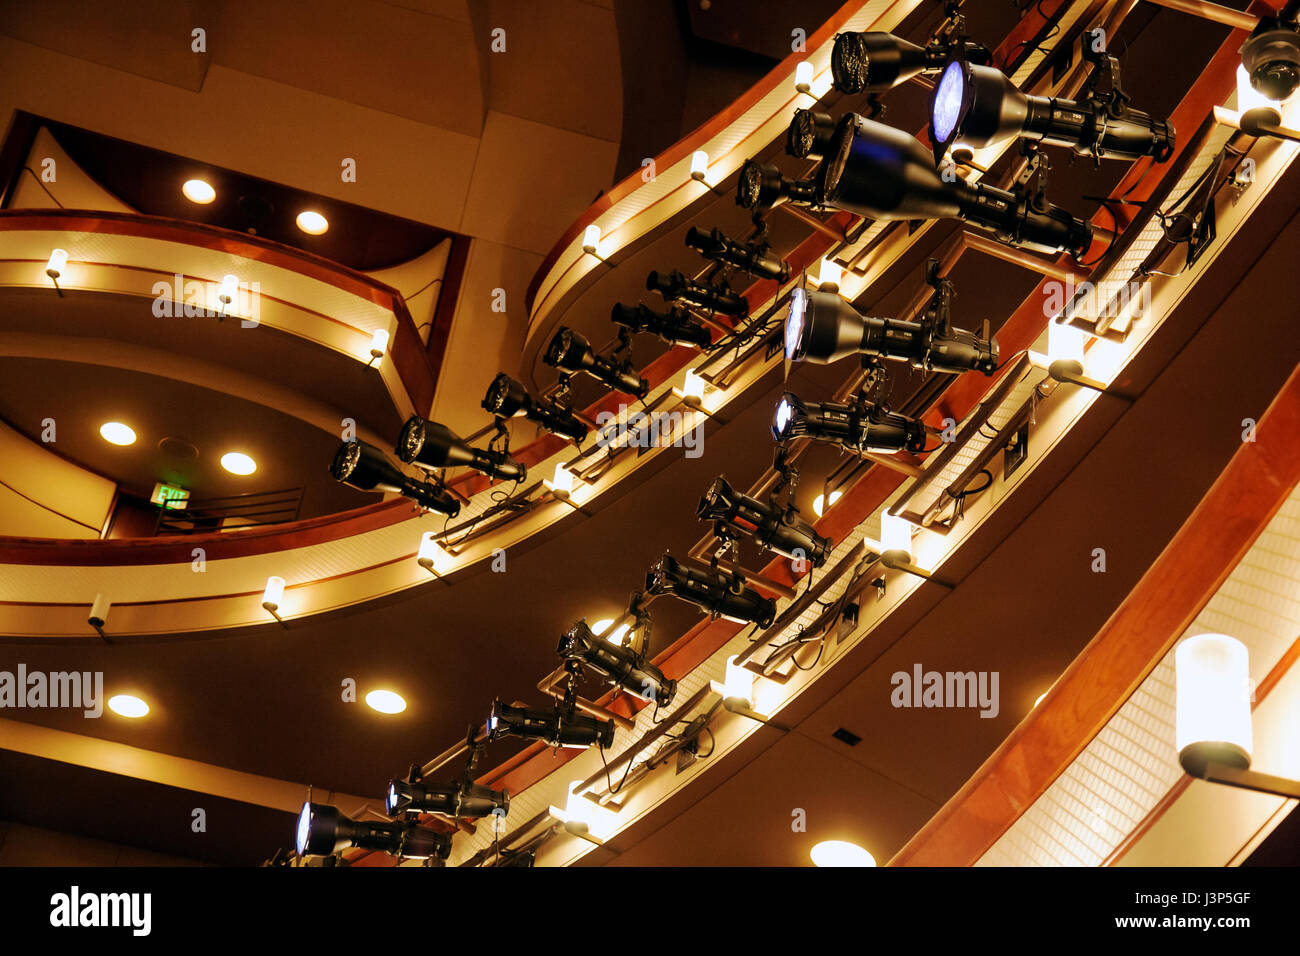 Miami Florida Adrienne Arsht Center opera house theater balconies lights theatrical lighting equipment stage lighting Cesar Pell & Miami Florida Adrienne Arsht Center opera house theater balconies ...